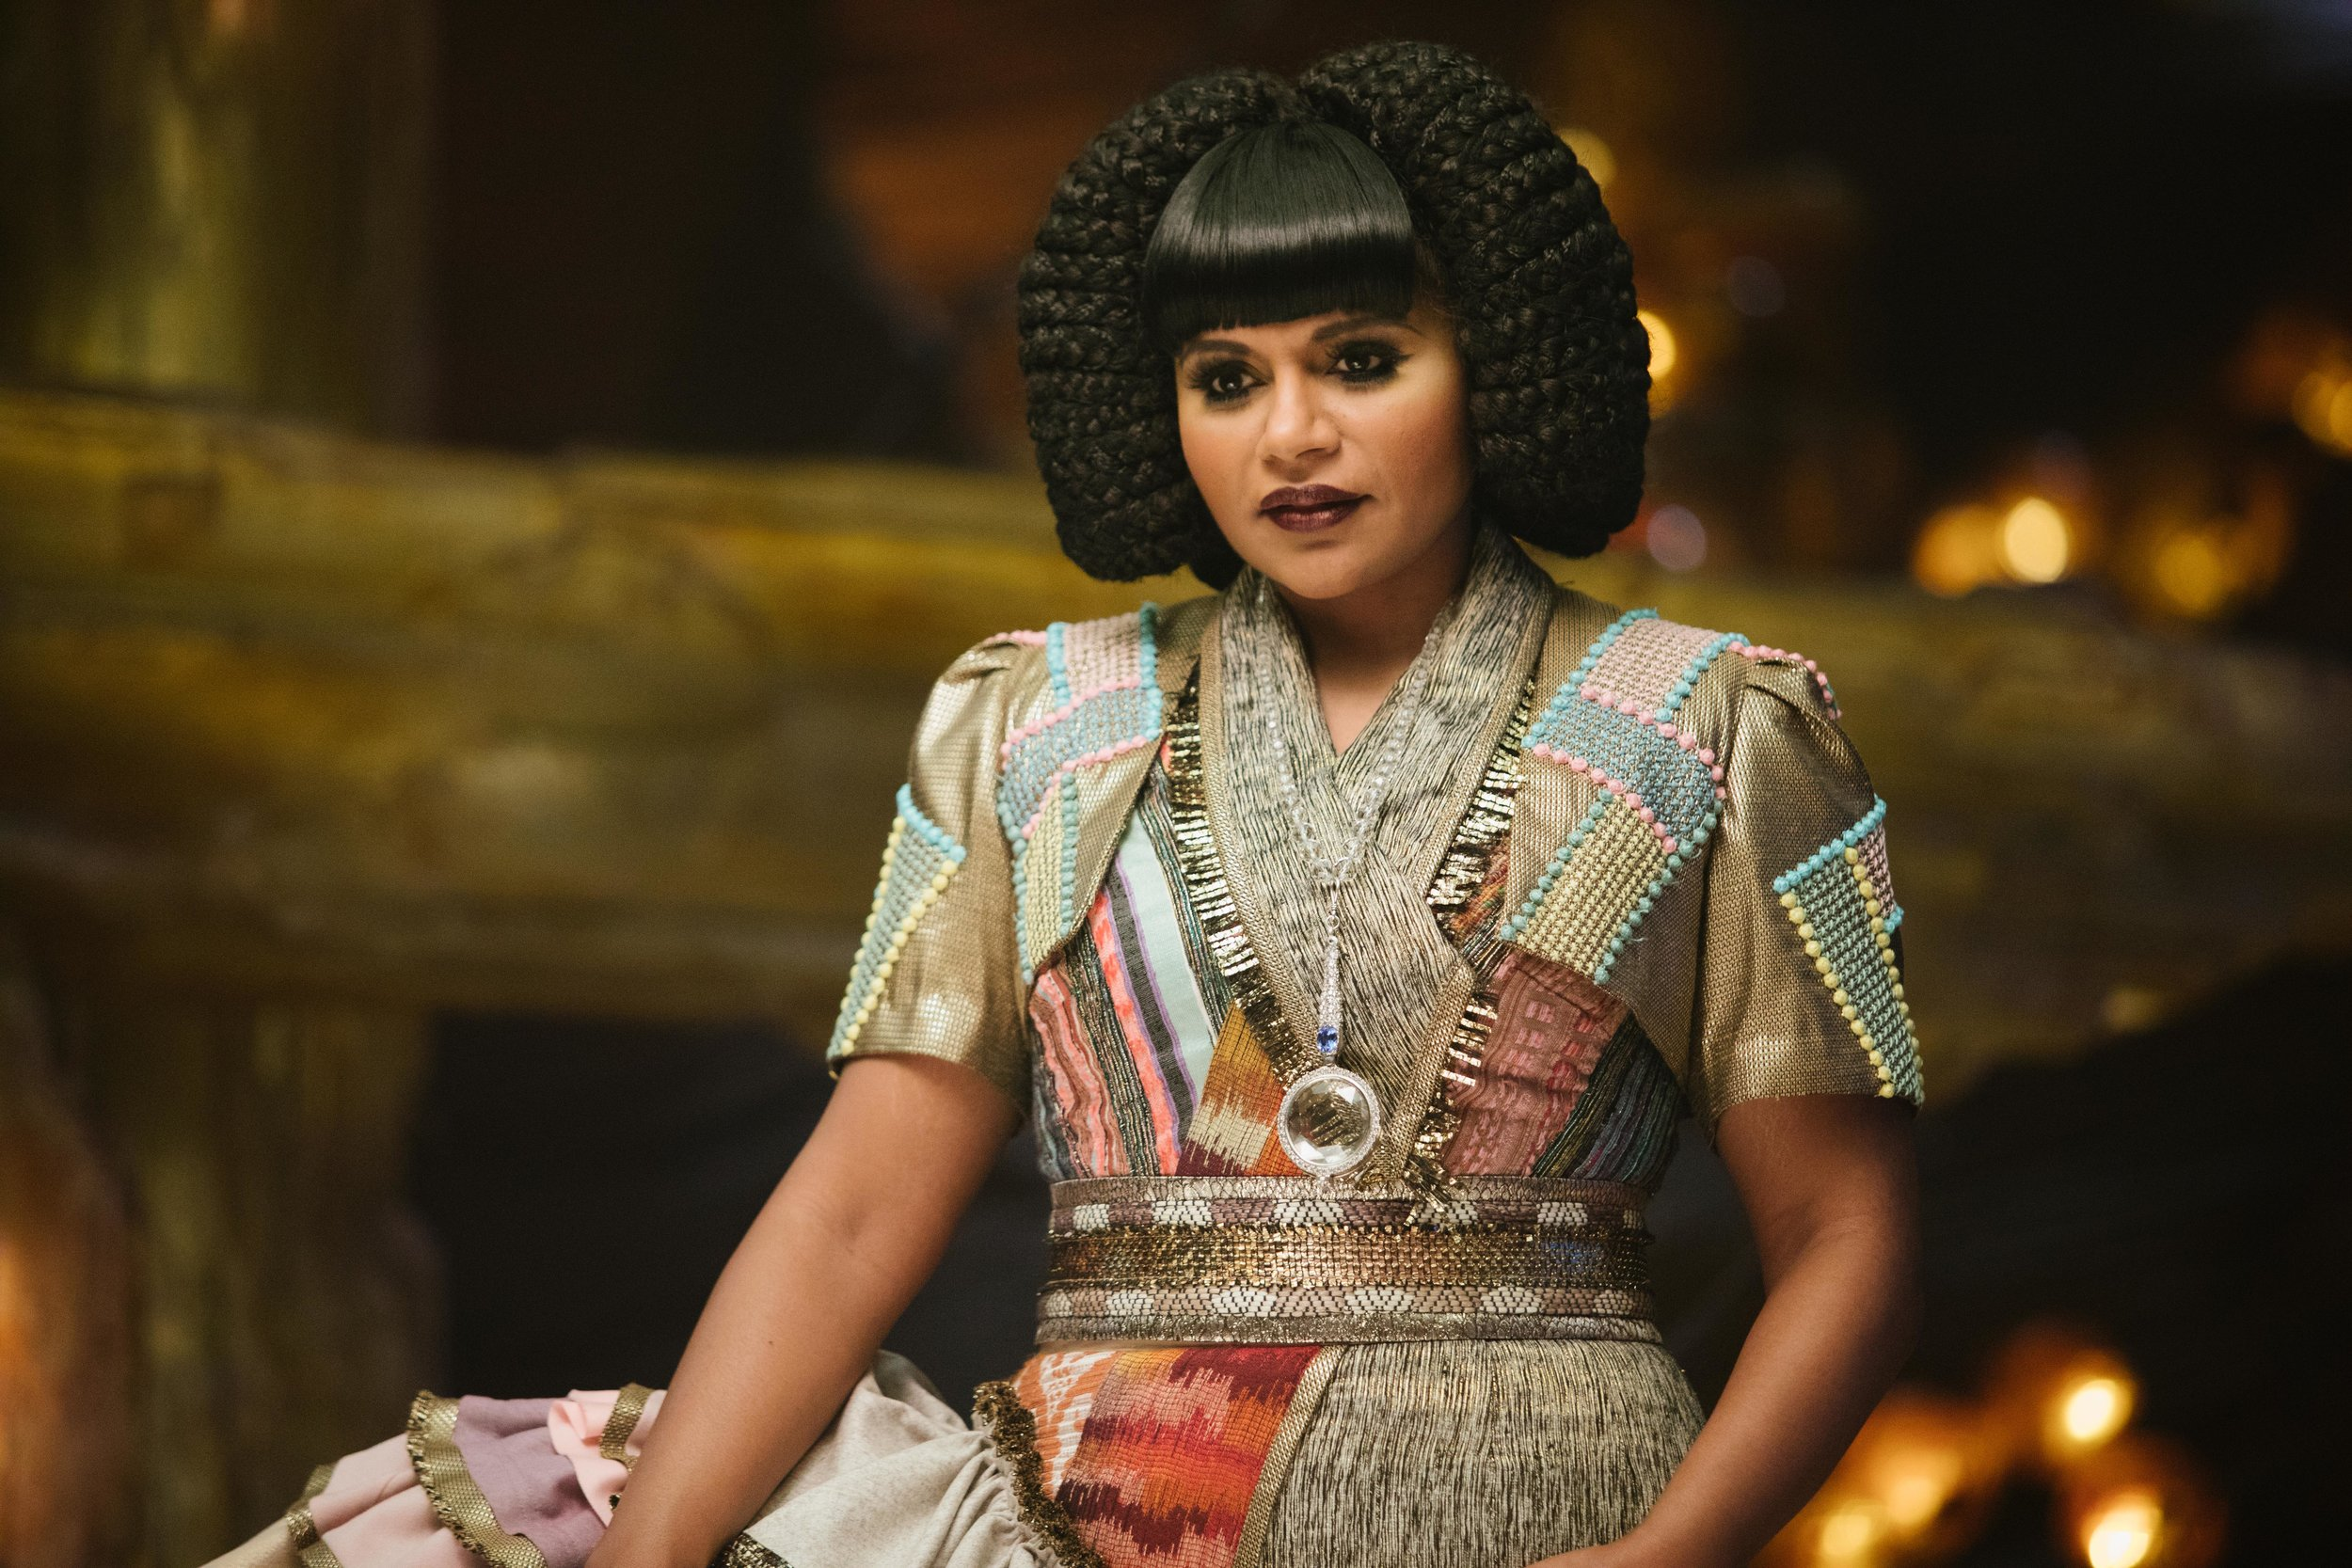 Mindy Kaling as Mrs Who in A Wrinkle in Time